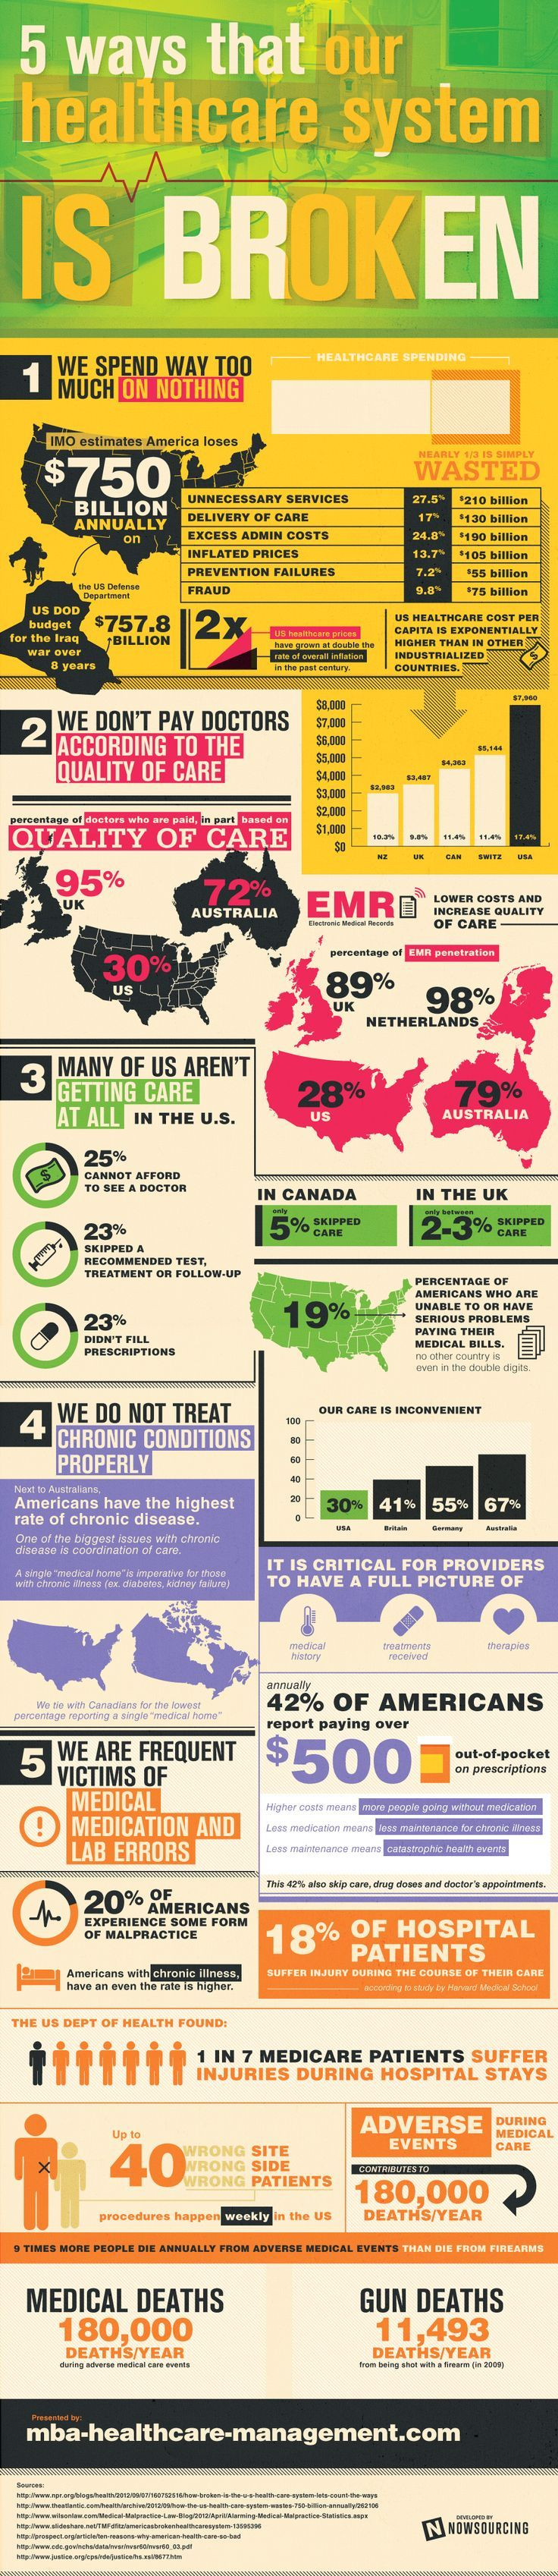 Healthcare infographic 5 Ways That Our Healthcare System